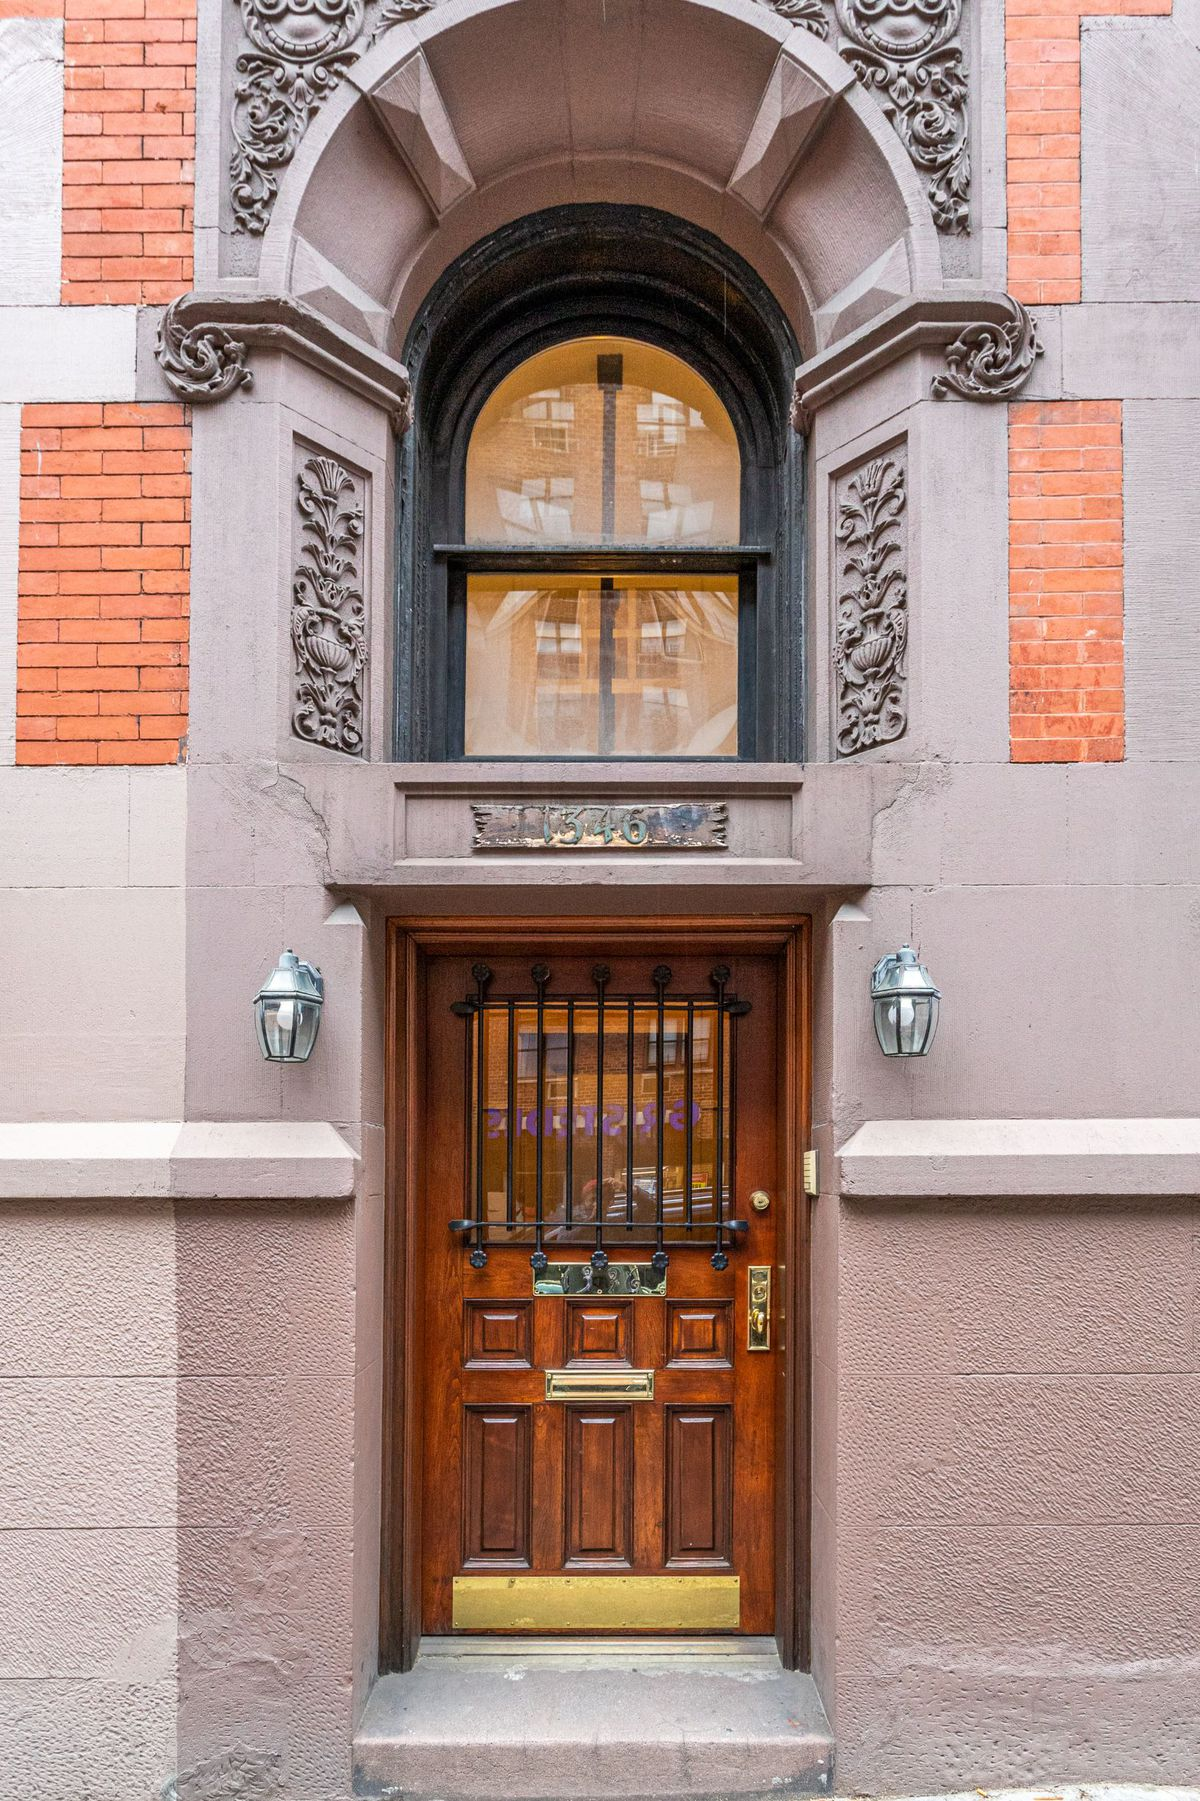 An entrance with terra cotta details, an arched window, and a wooden door.